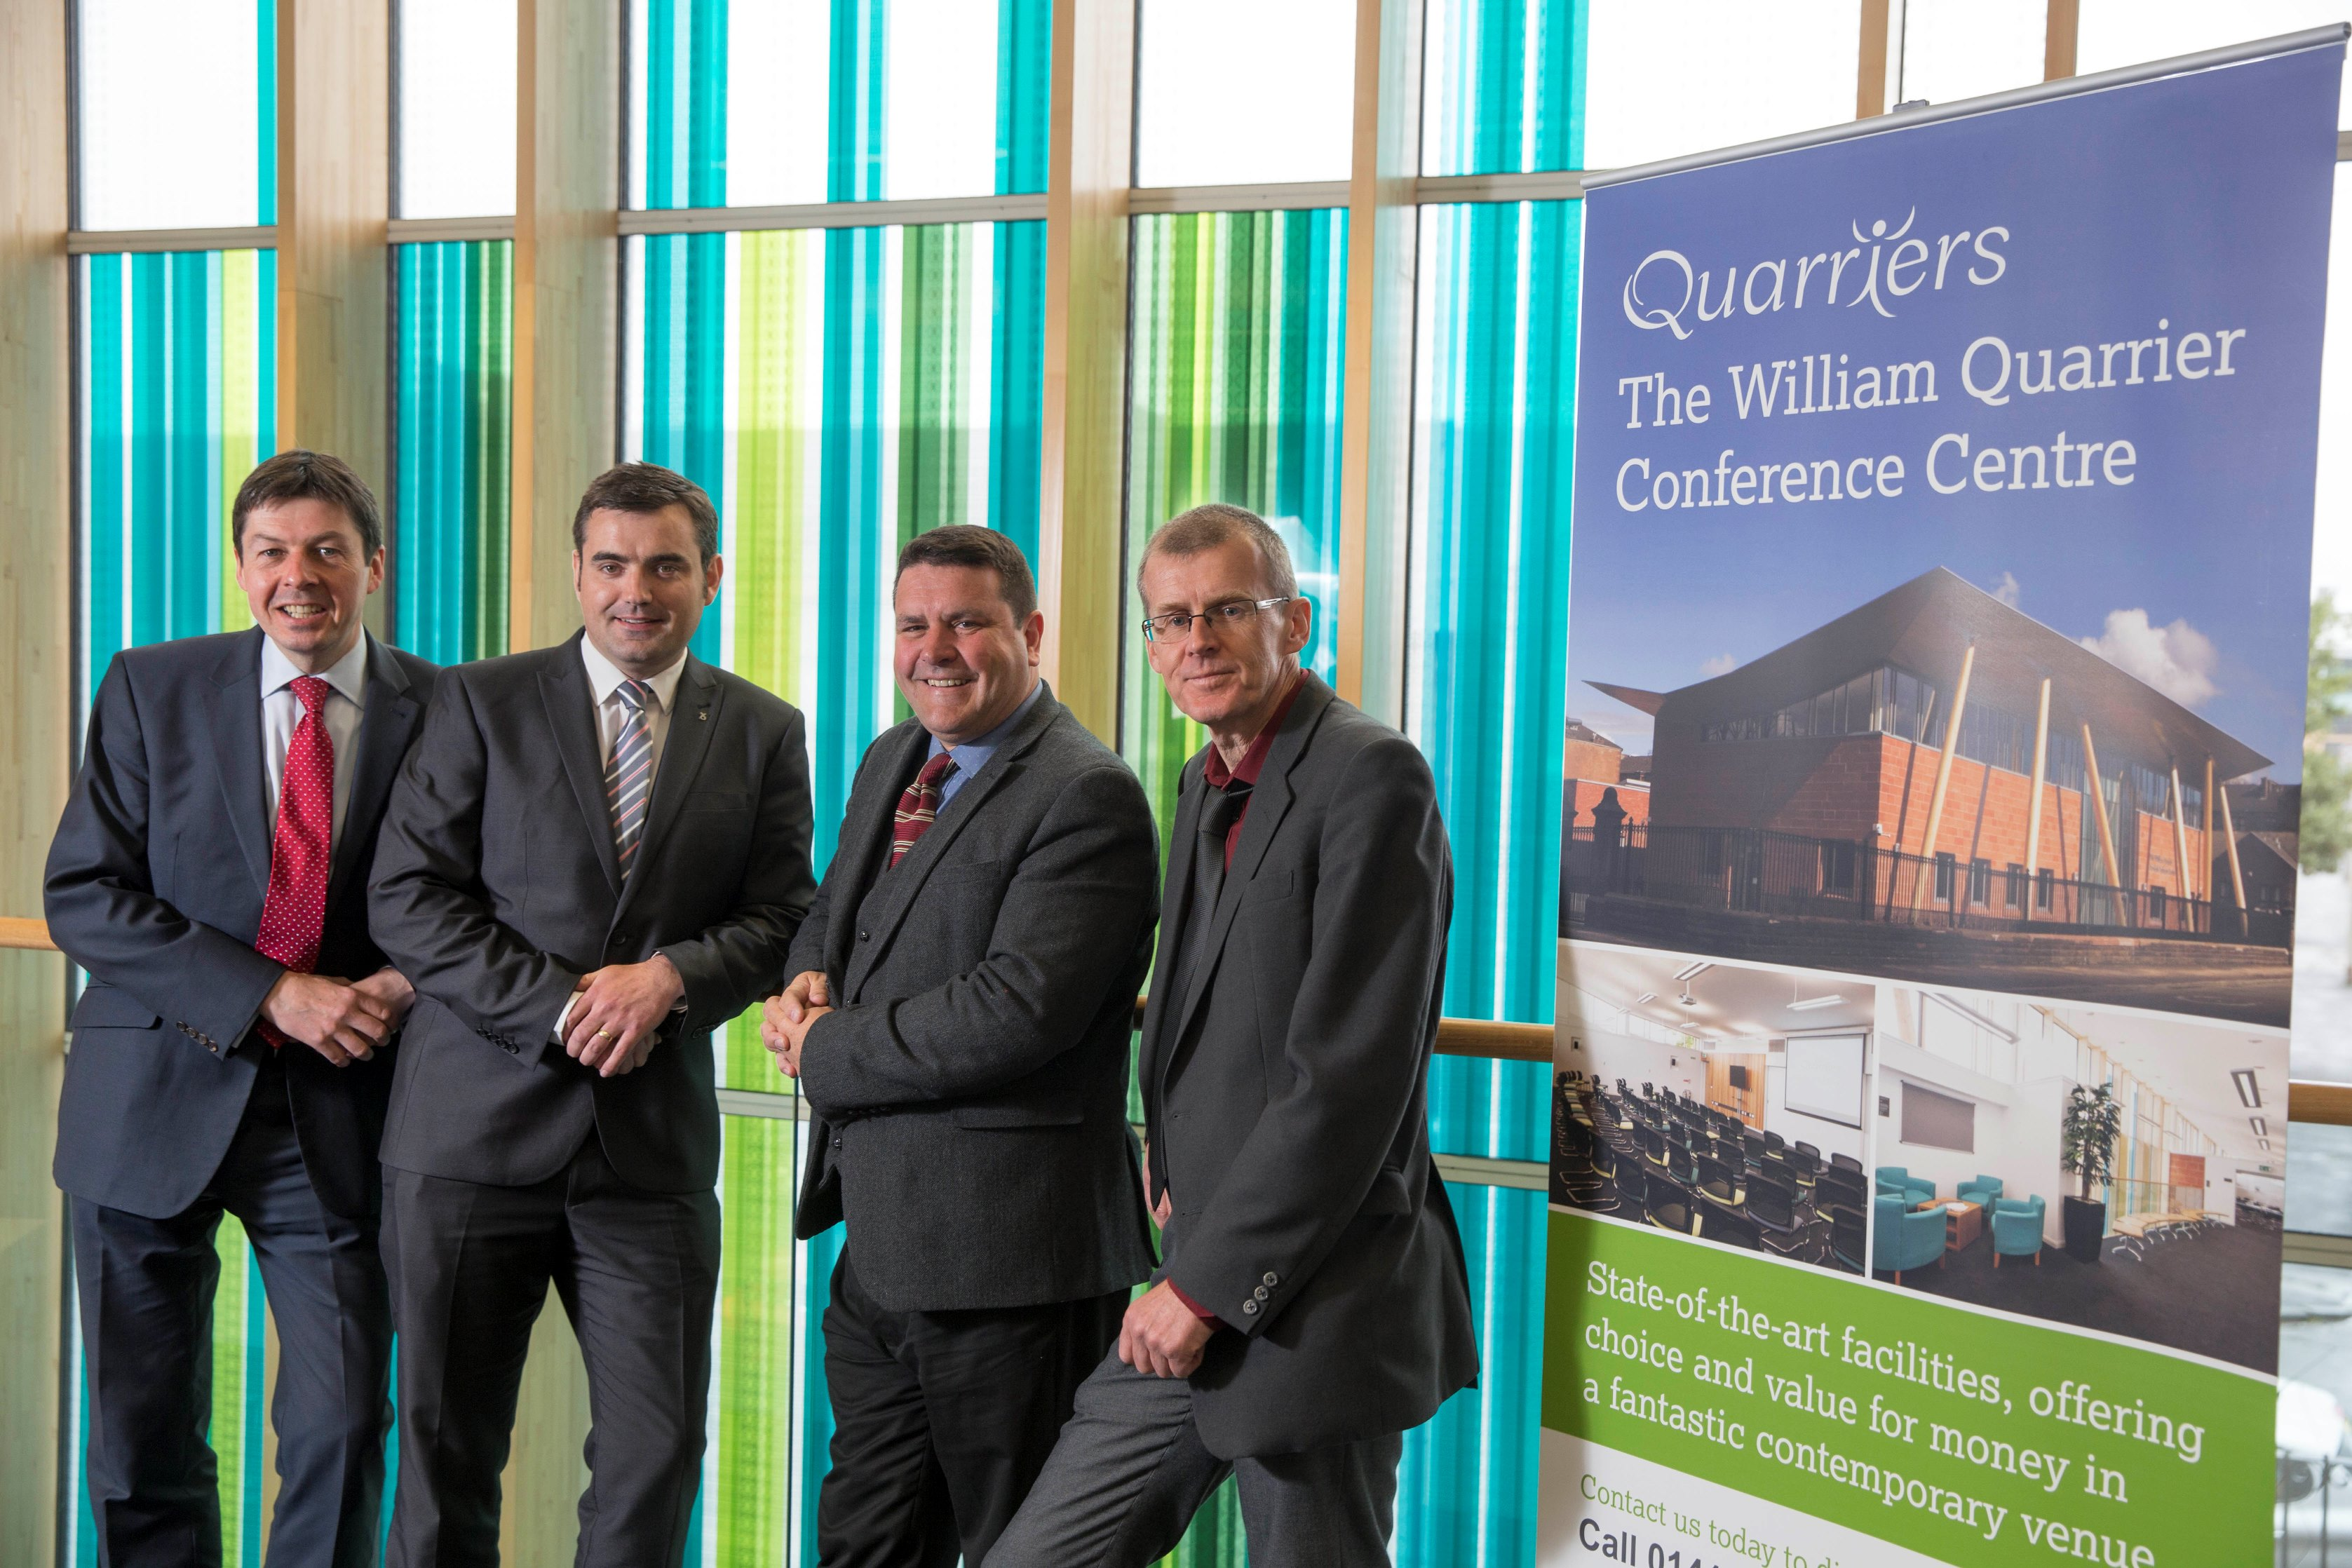 Media Release: Quarriers group quiz politicians at panel event